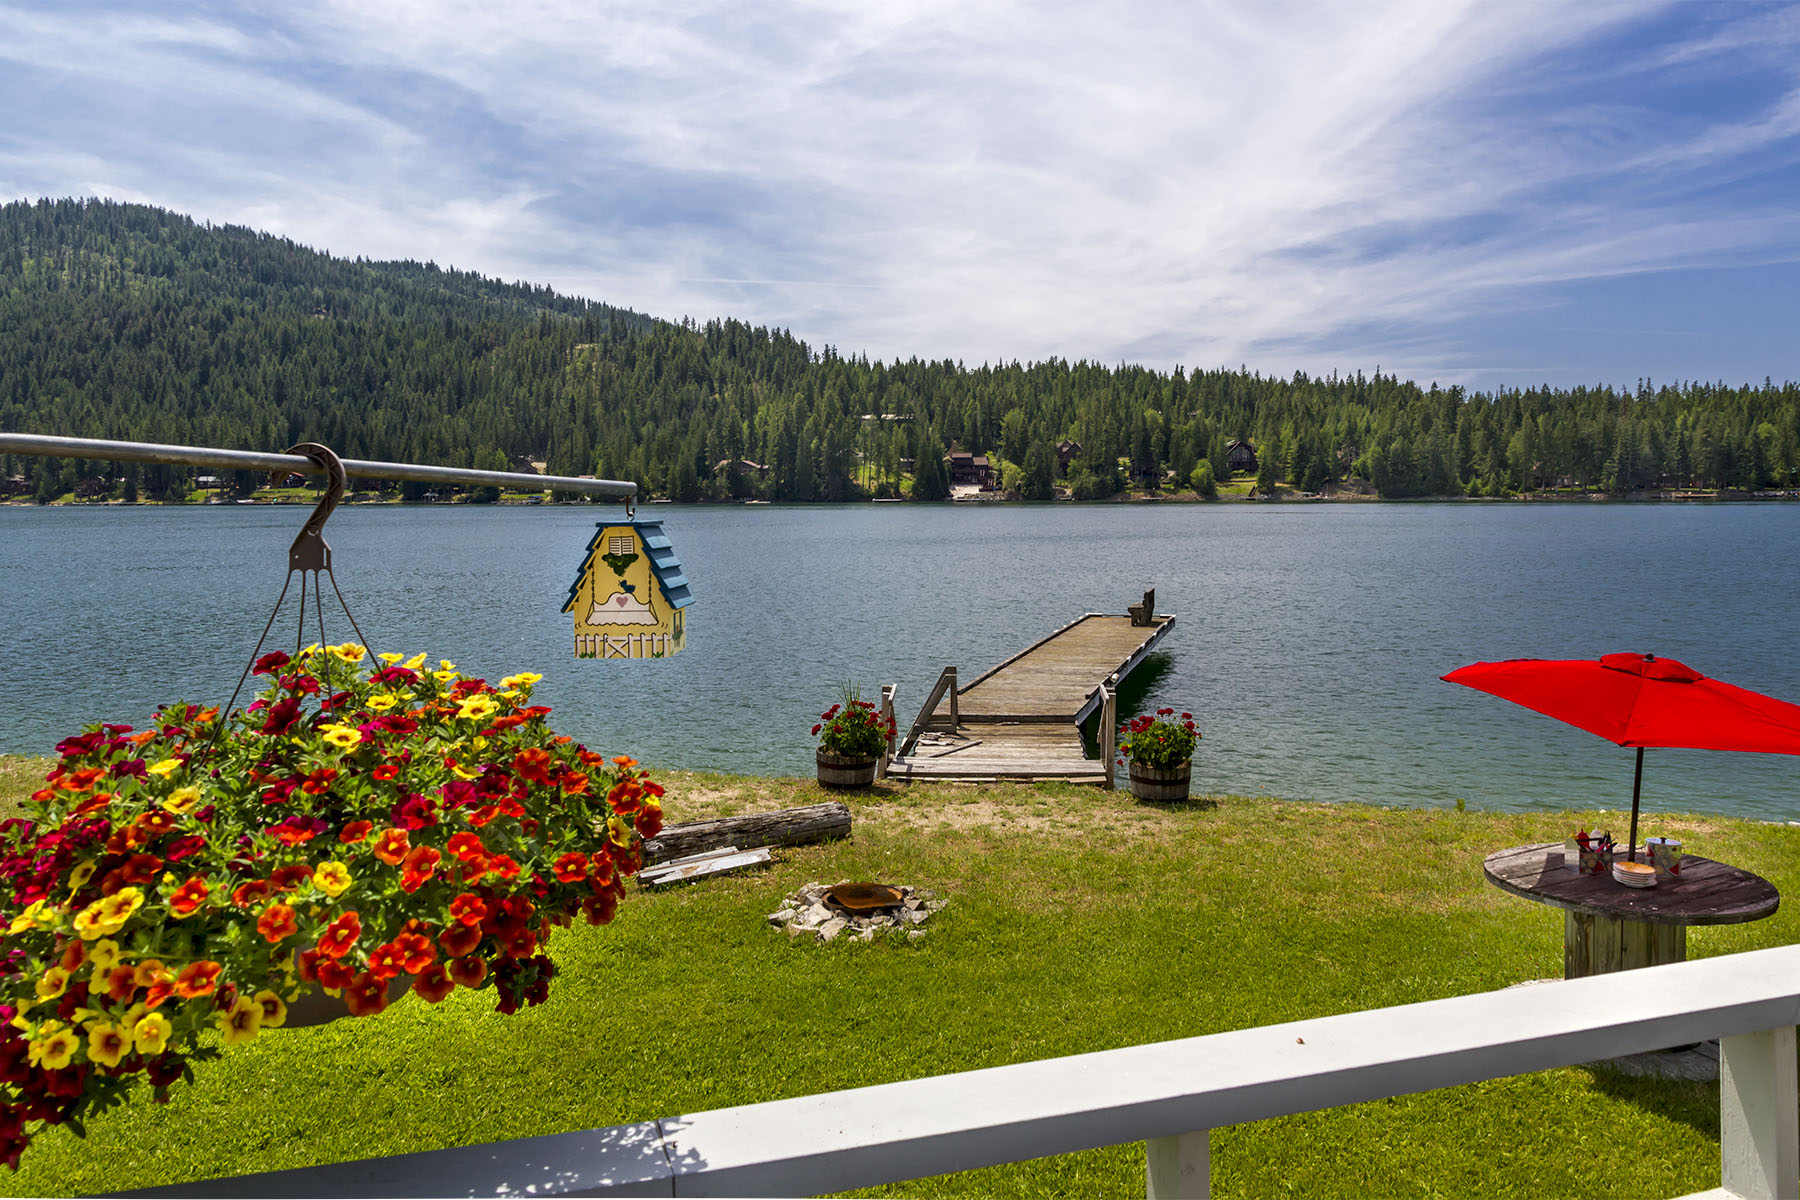 Single Family Home for Sale at Snug Harbor Waterfront 552 Snug Harbor Sandpoint, Idaho, 83864 United States